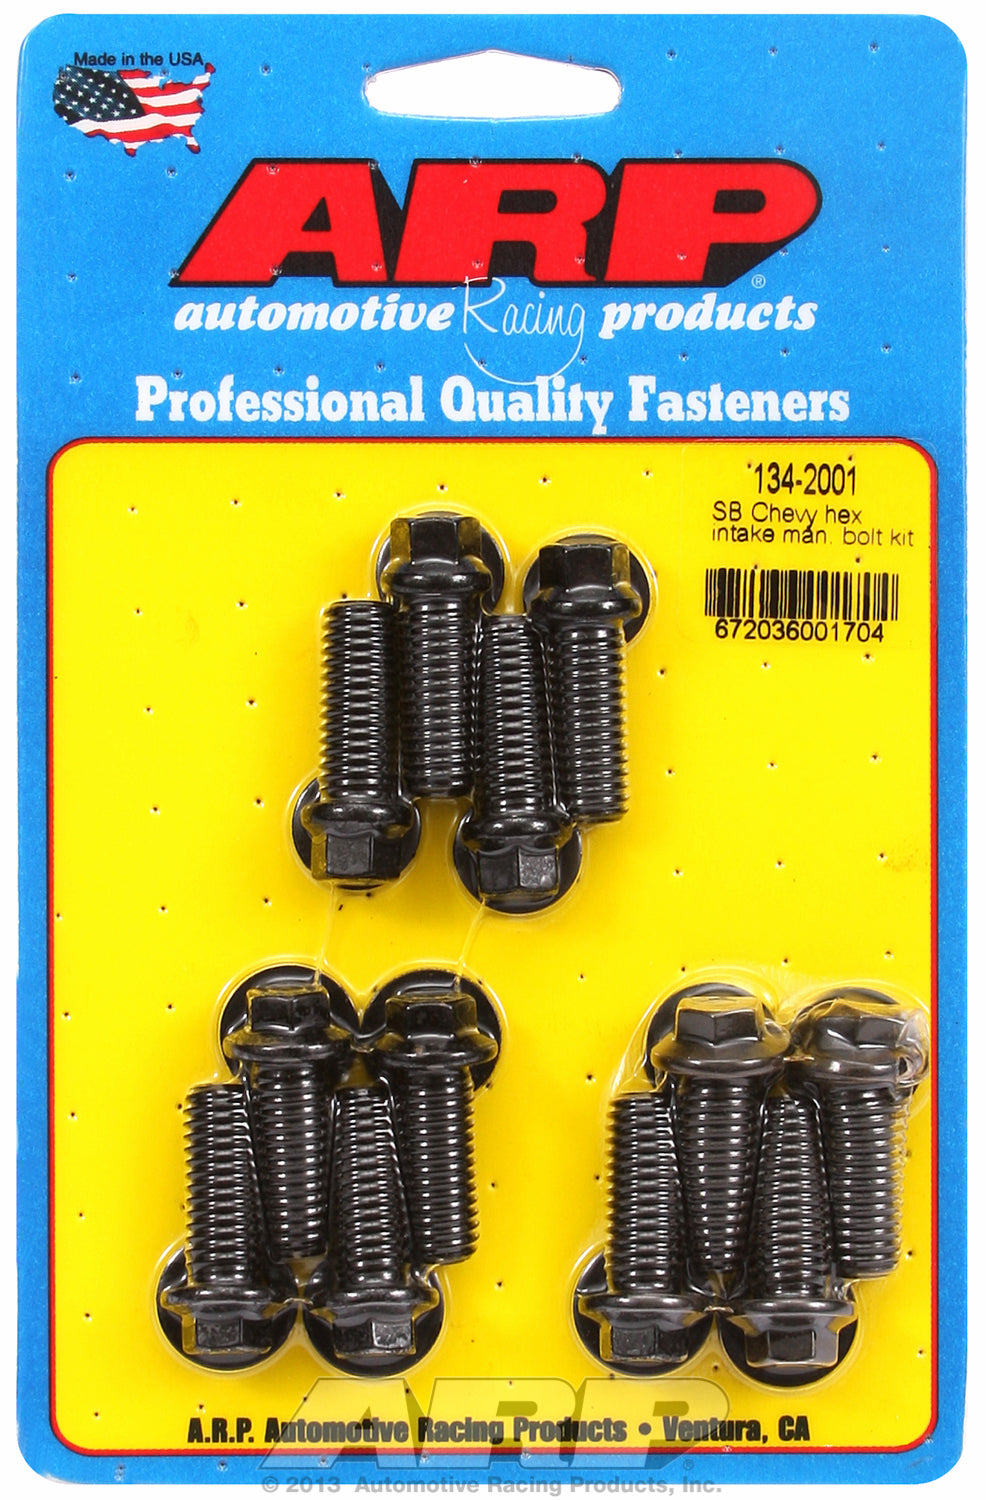 Hex Head Black Oxide Intake Manifold Bolts for Chevrolet 265-400 cid, factory OEM, 1.000˝, 12 pieces